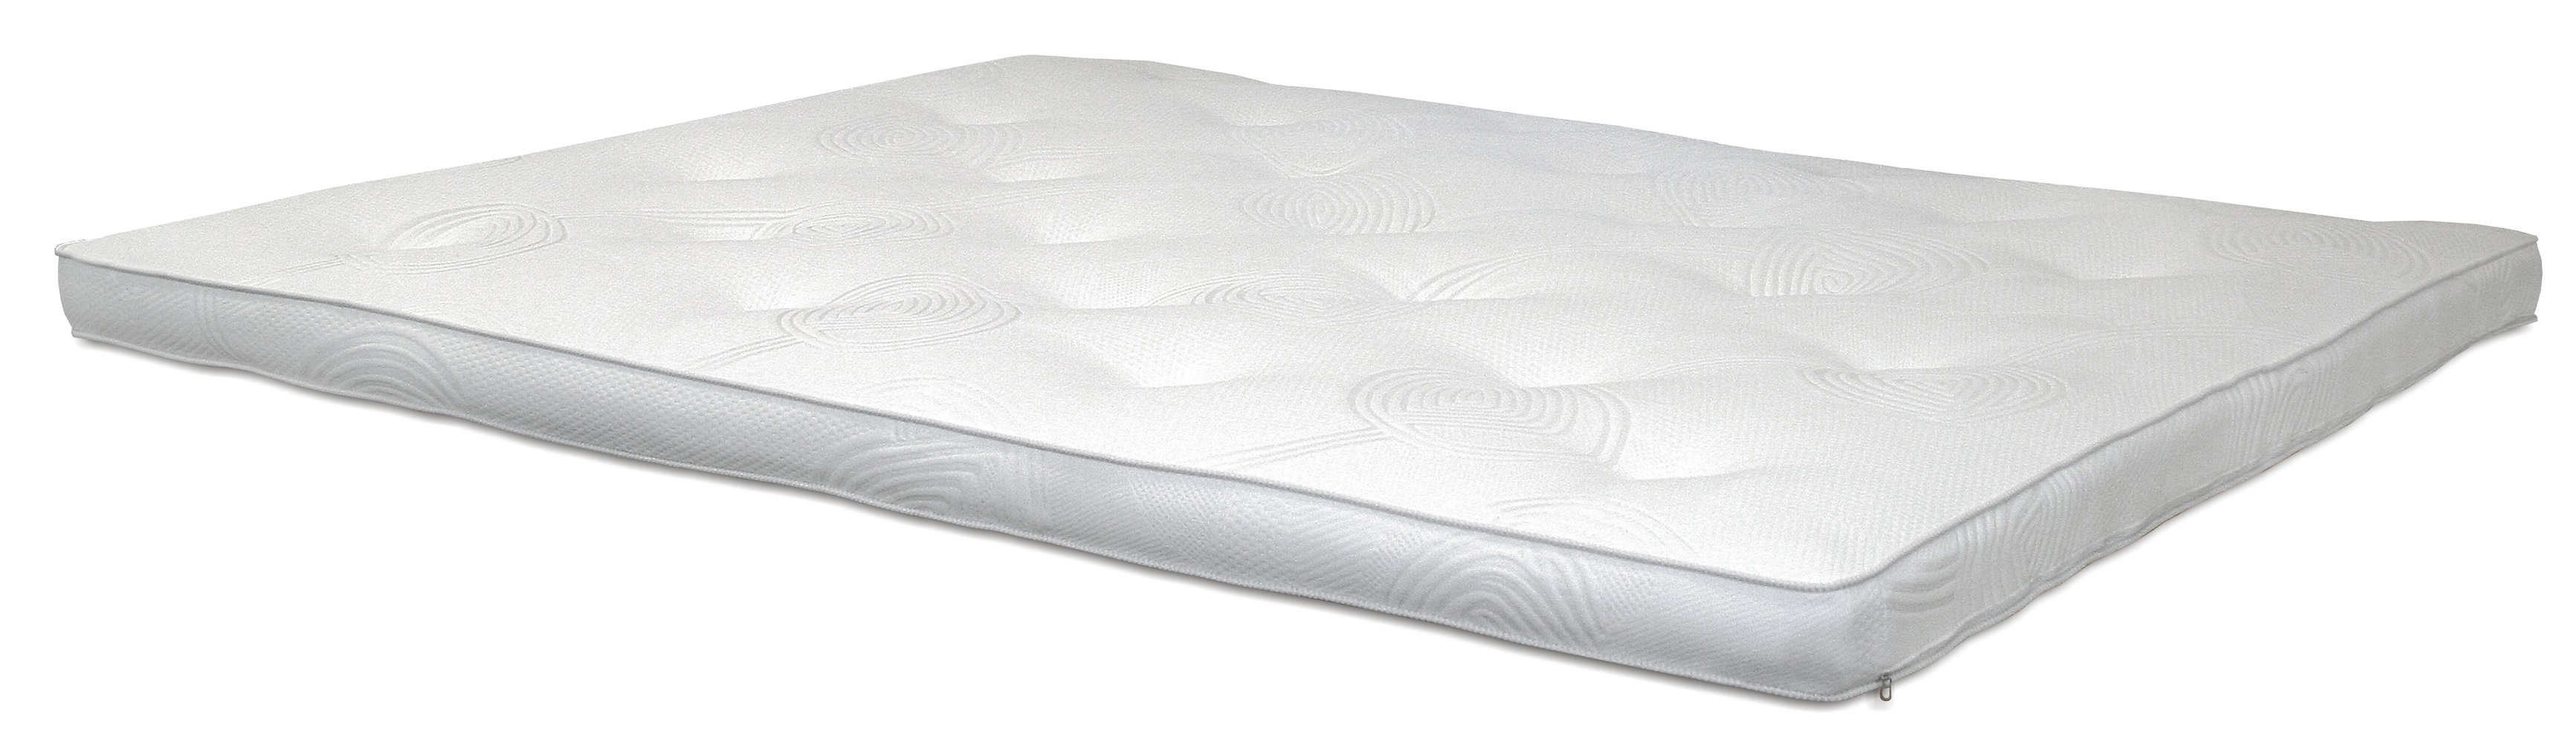 GRAND TOP mattress WHITE 1 17